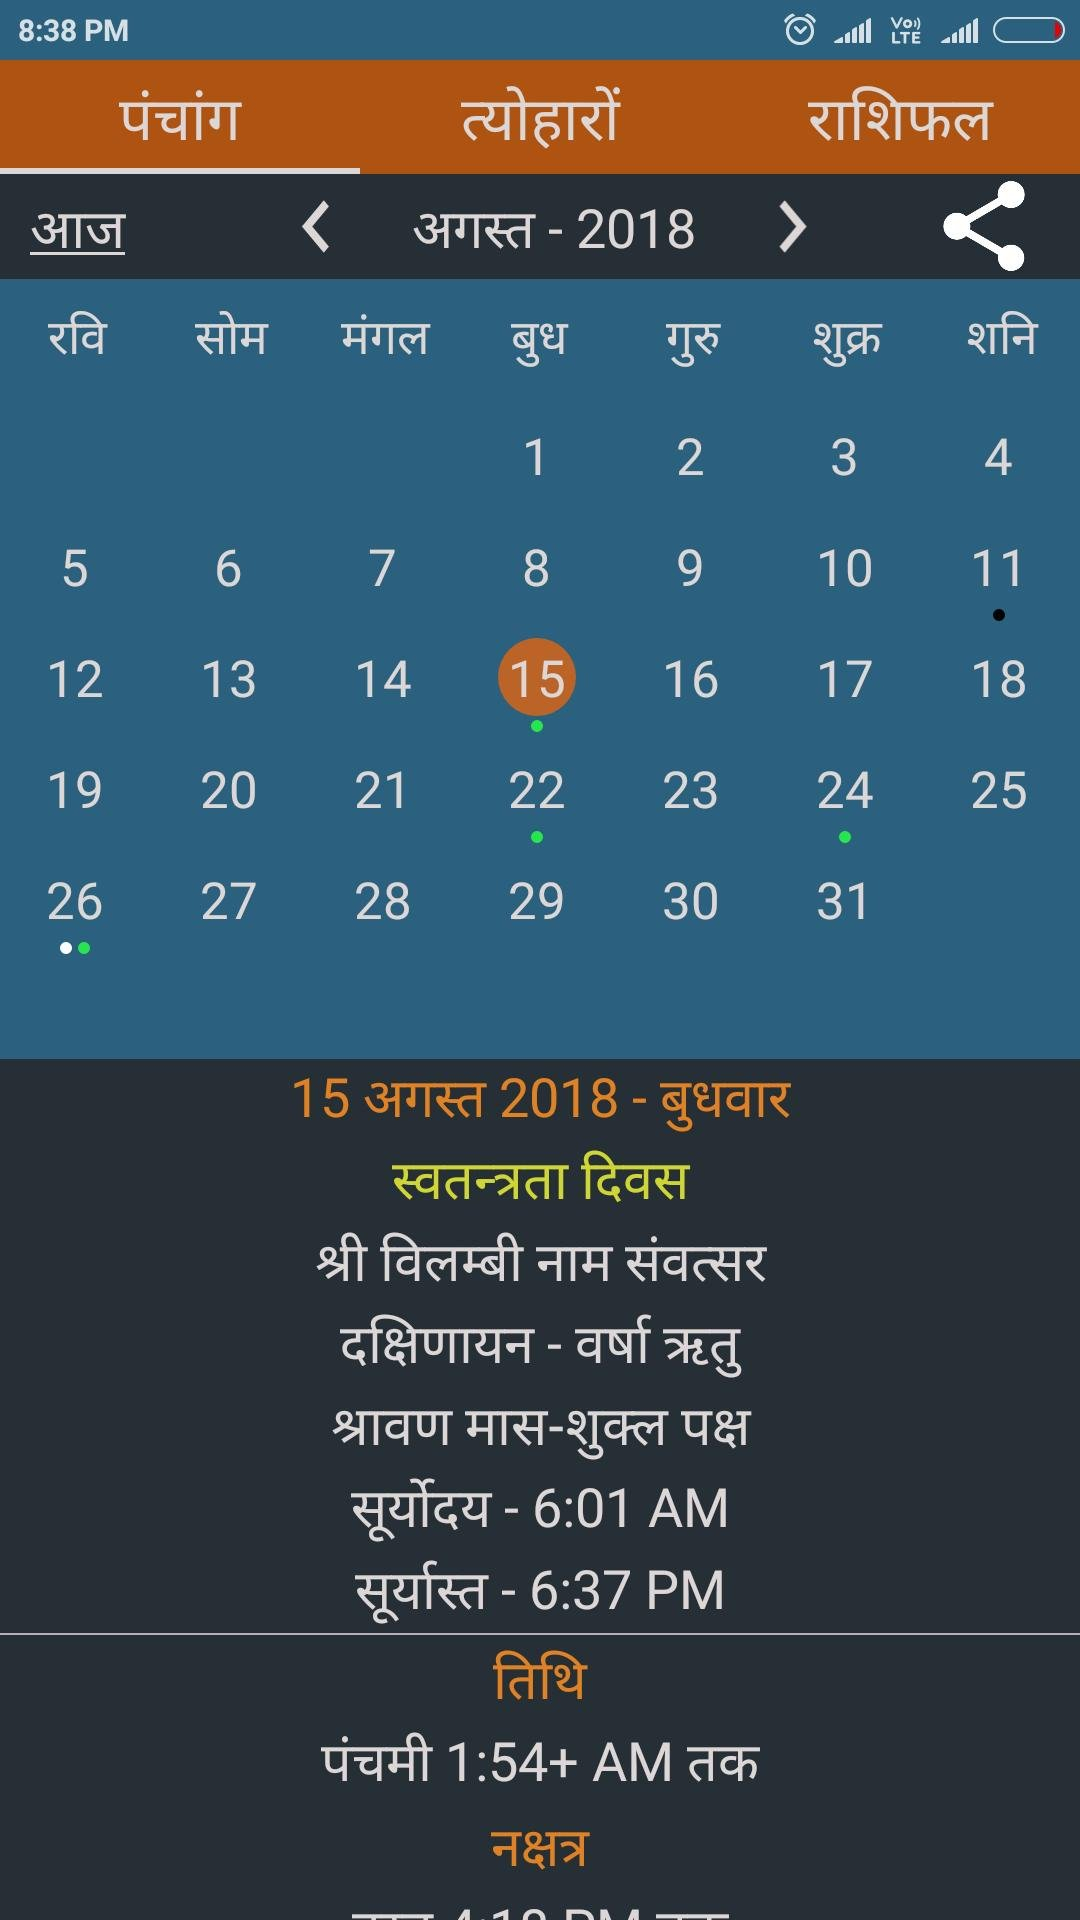 Hindi Calendar 2019 - Rashifal Panchang Horoscope For Android - Apk Calendar 2019 Rashifal